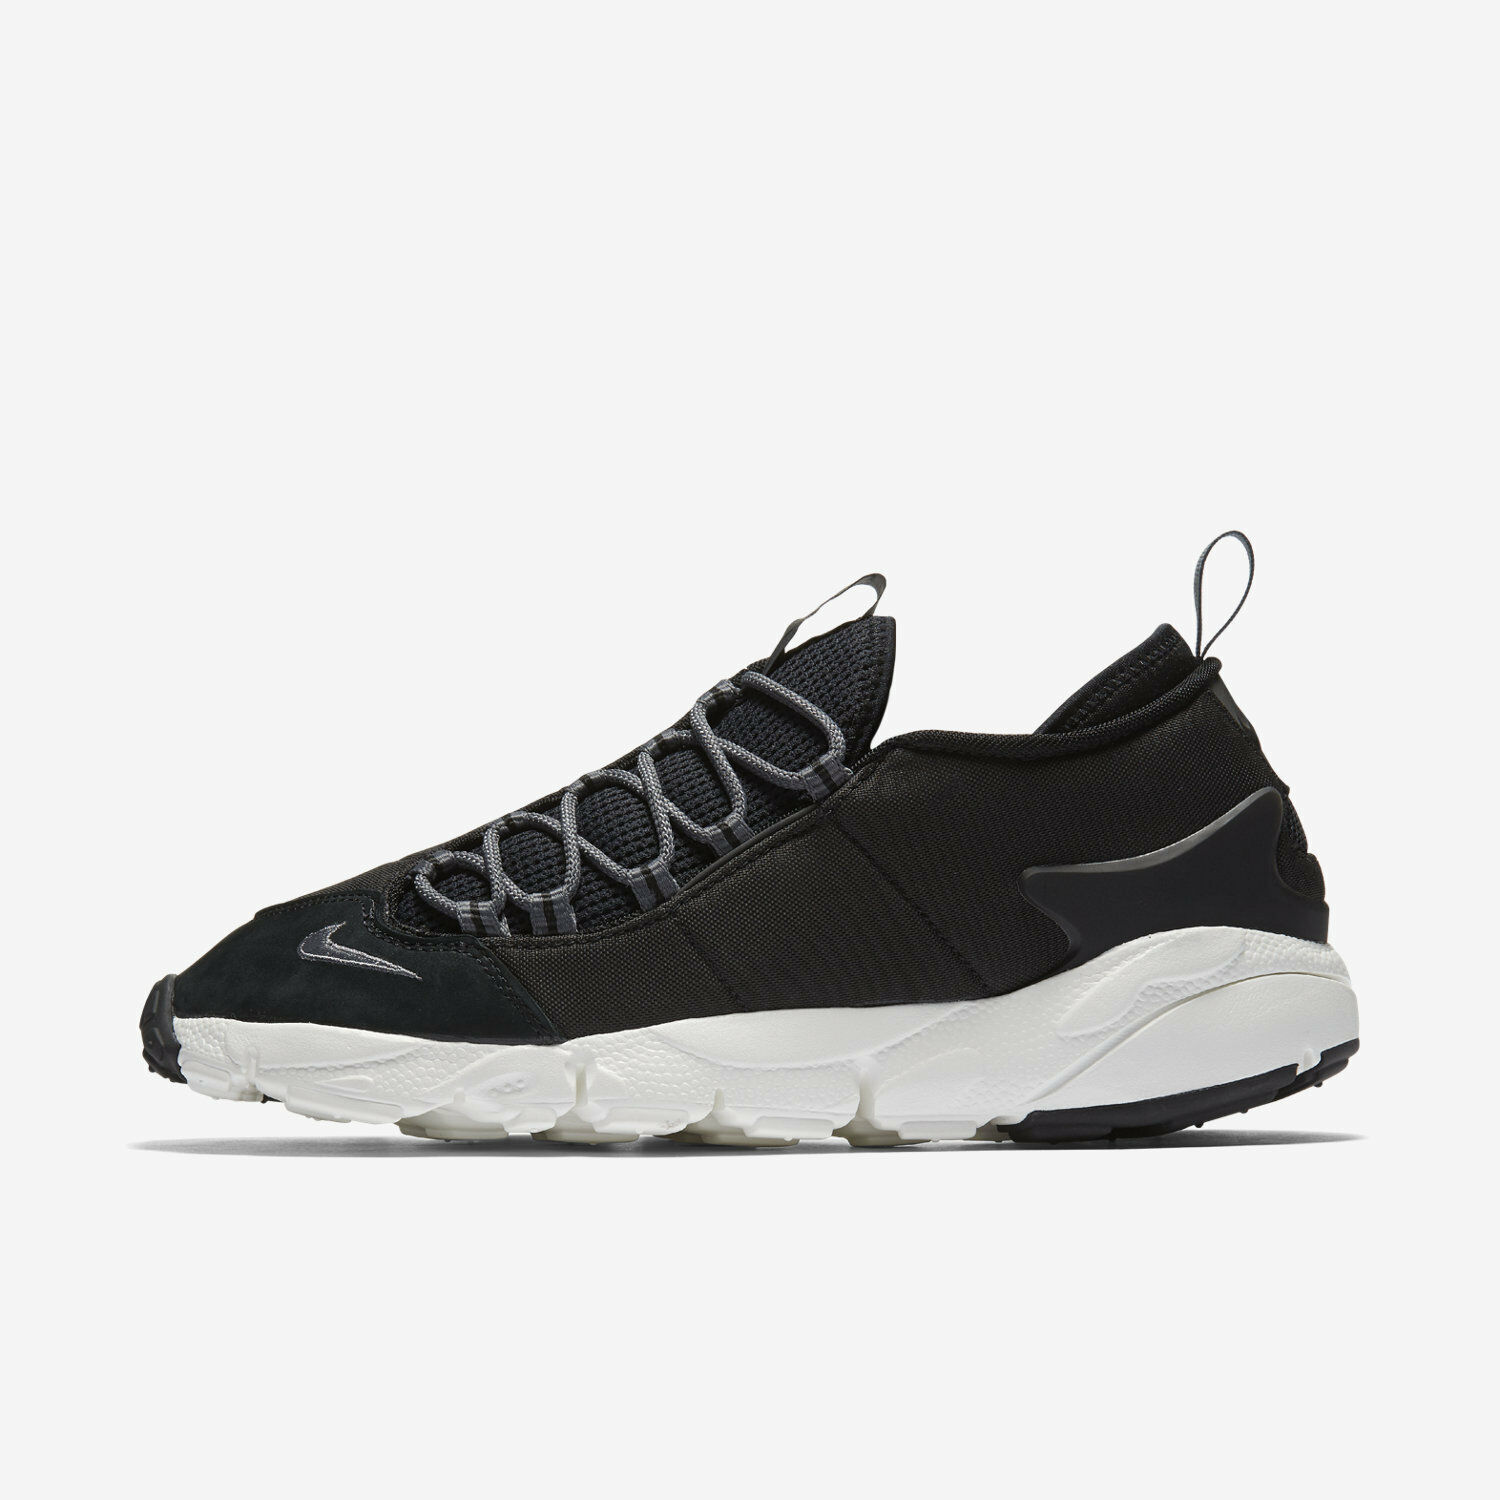 Nike Men's Air Footscape NM Shoes Size 6.5 Black White 852629-002